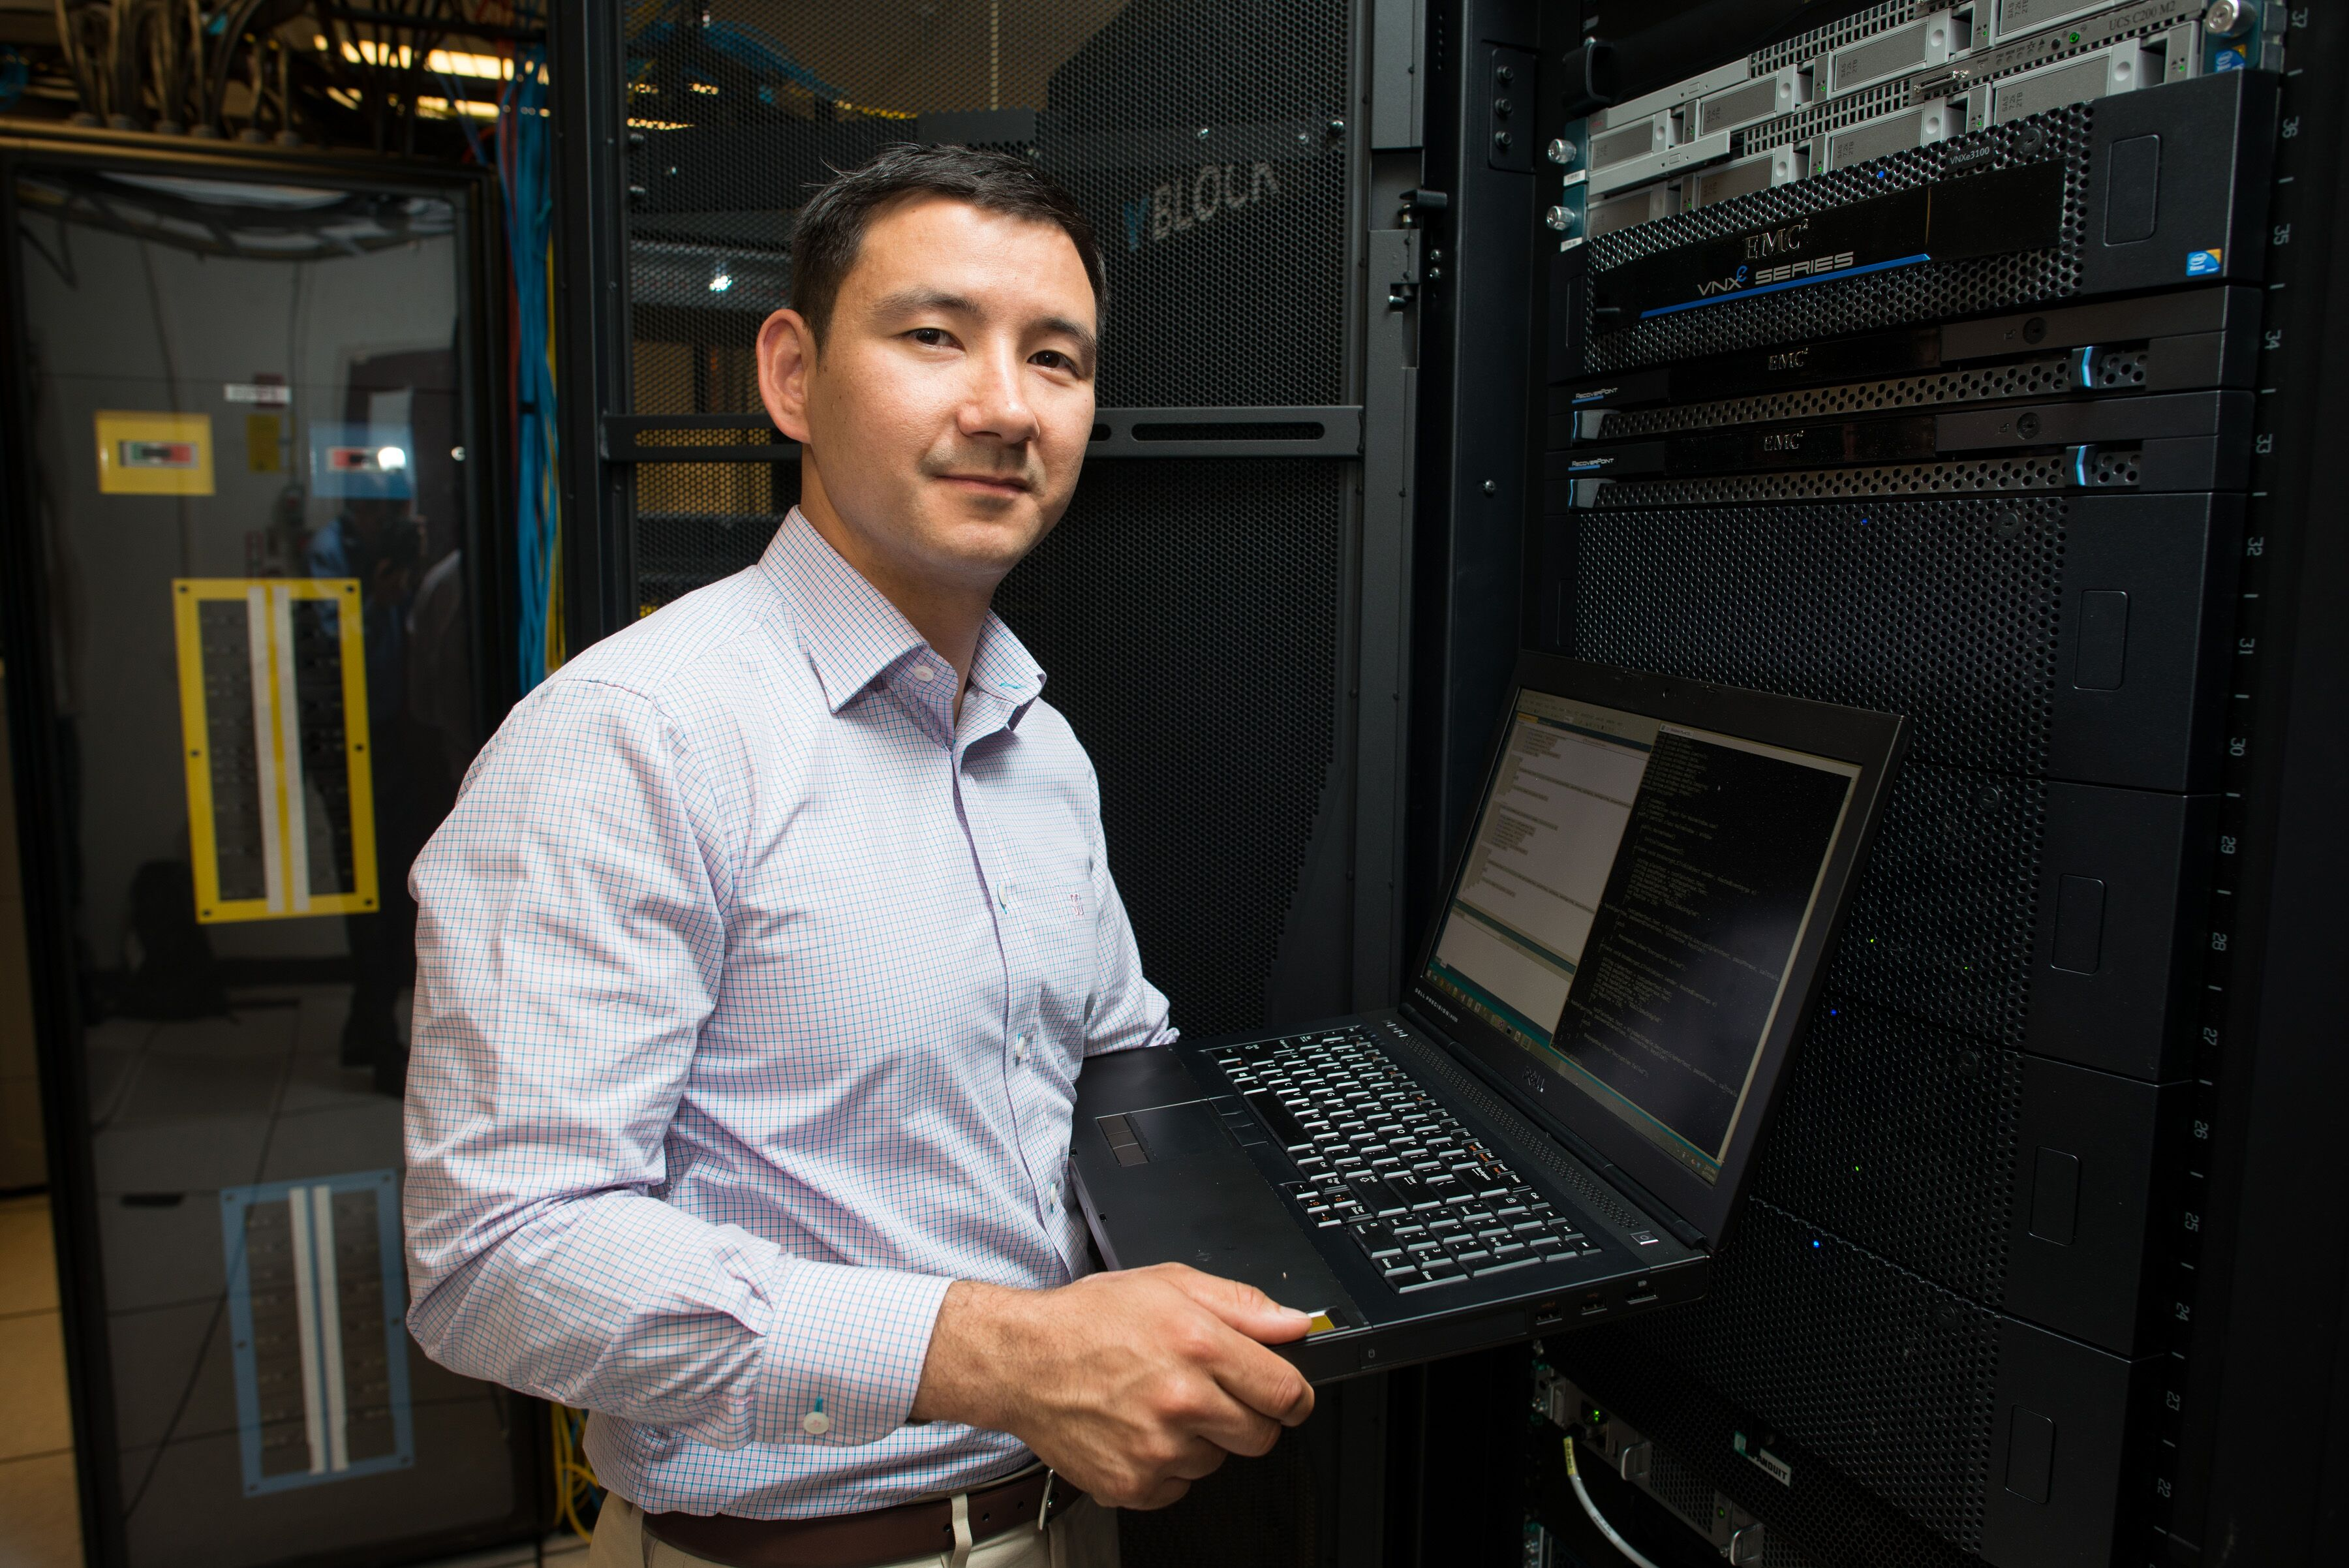 student holding laptop in server room